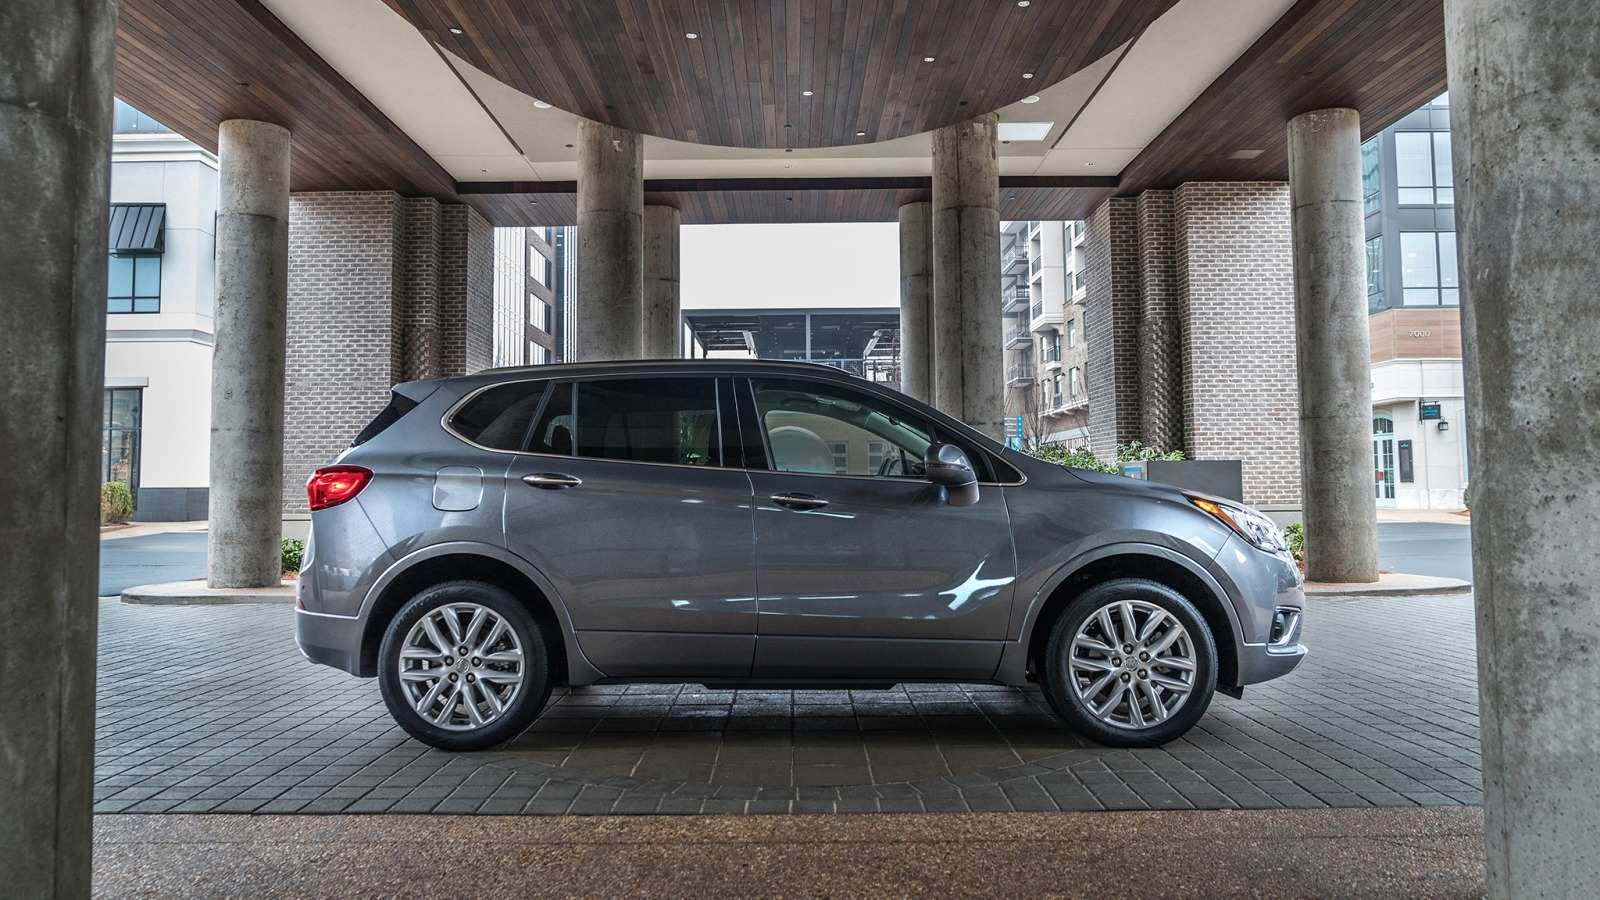 51 New 2019 Buick Envision Concept with 2019 Buick Envision